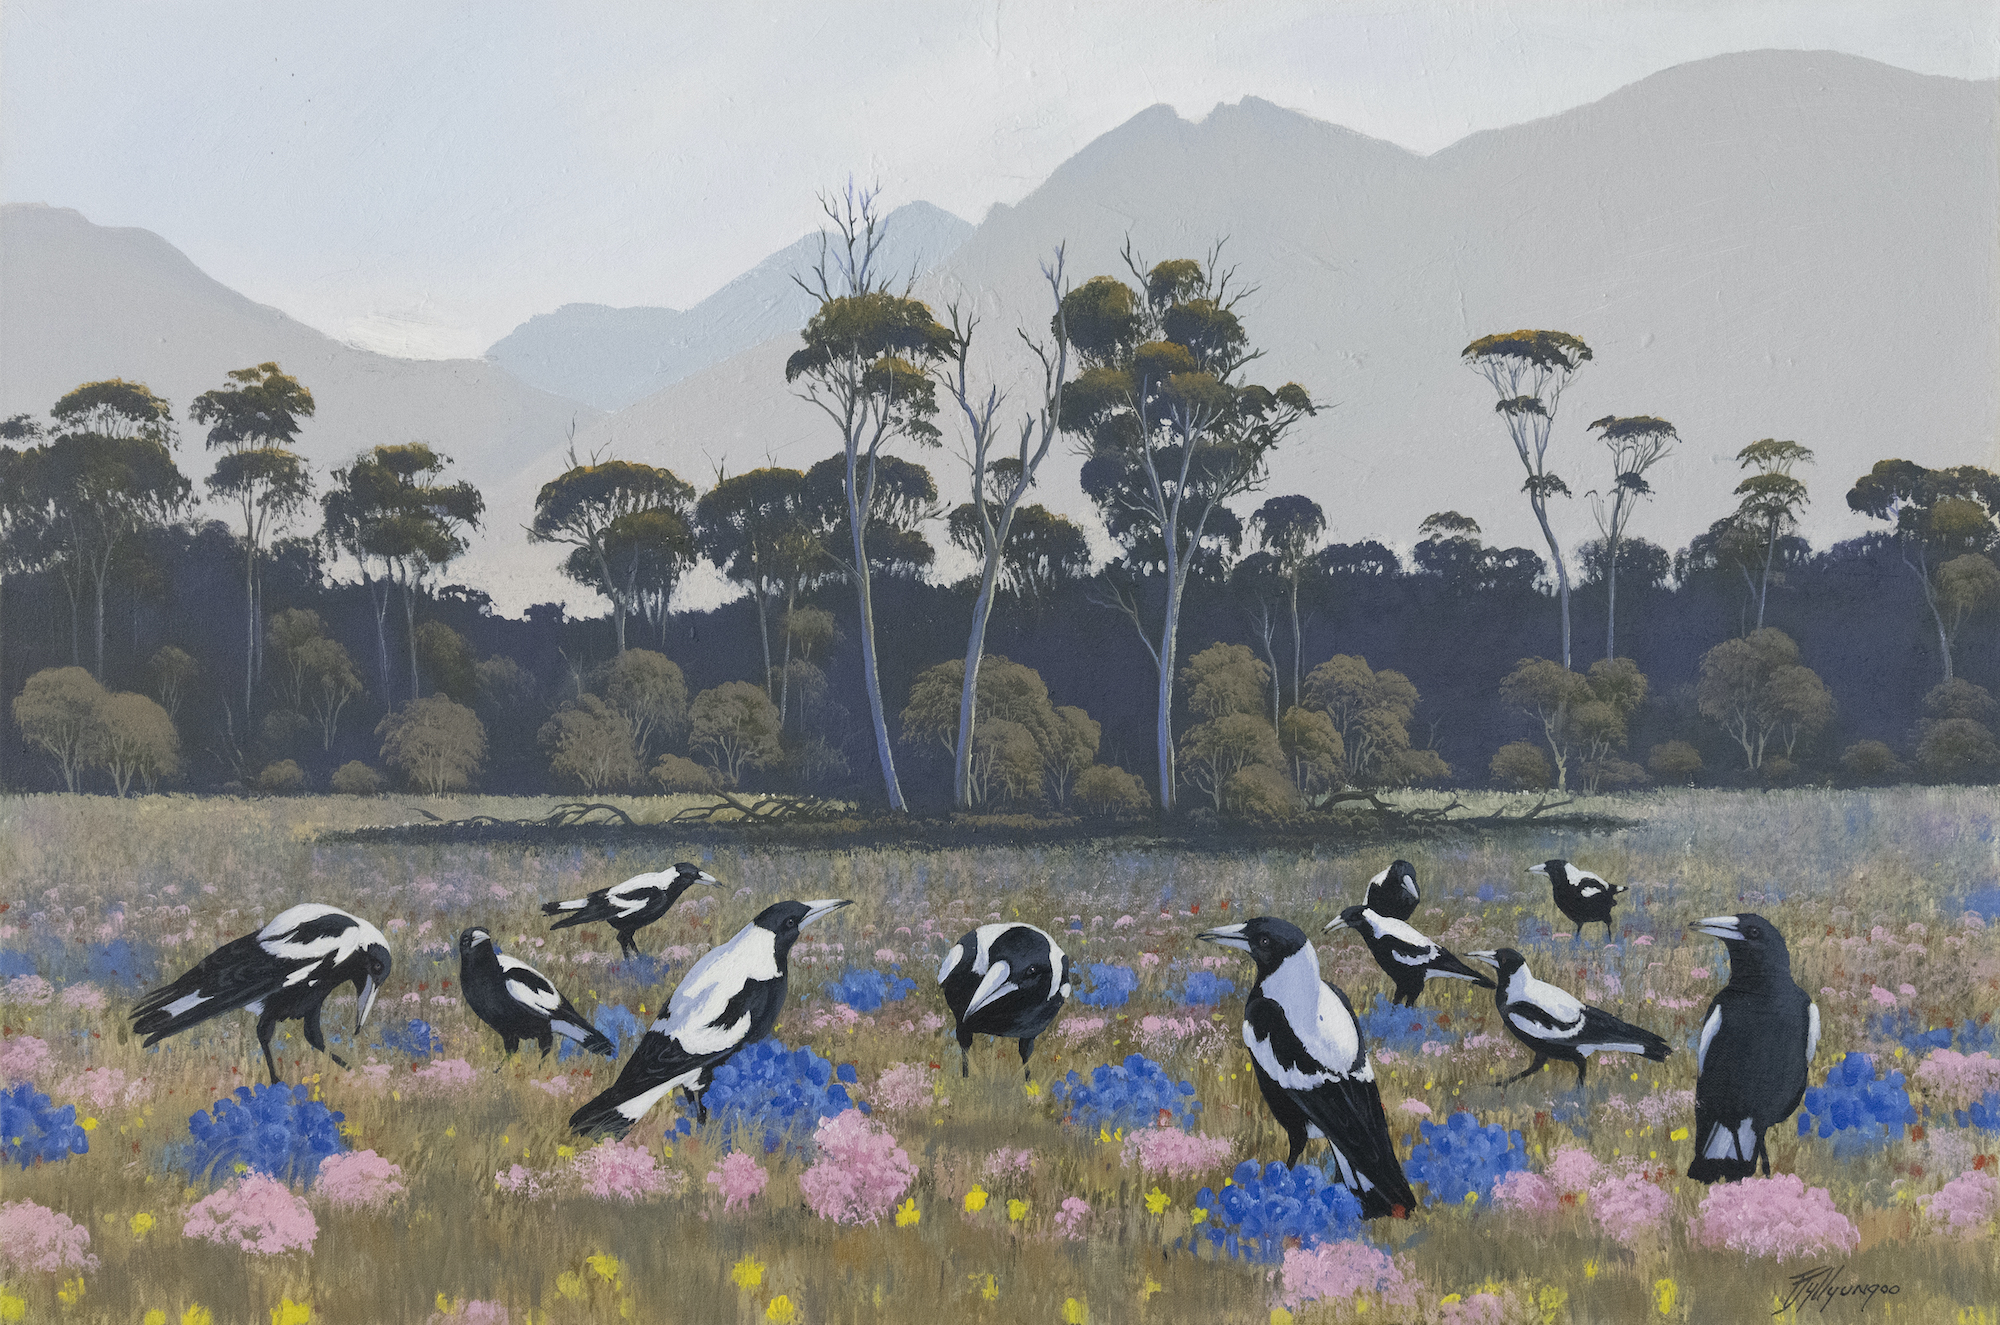 Pictured is a field of magpies.